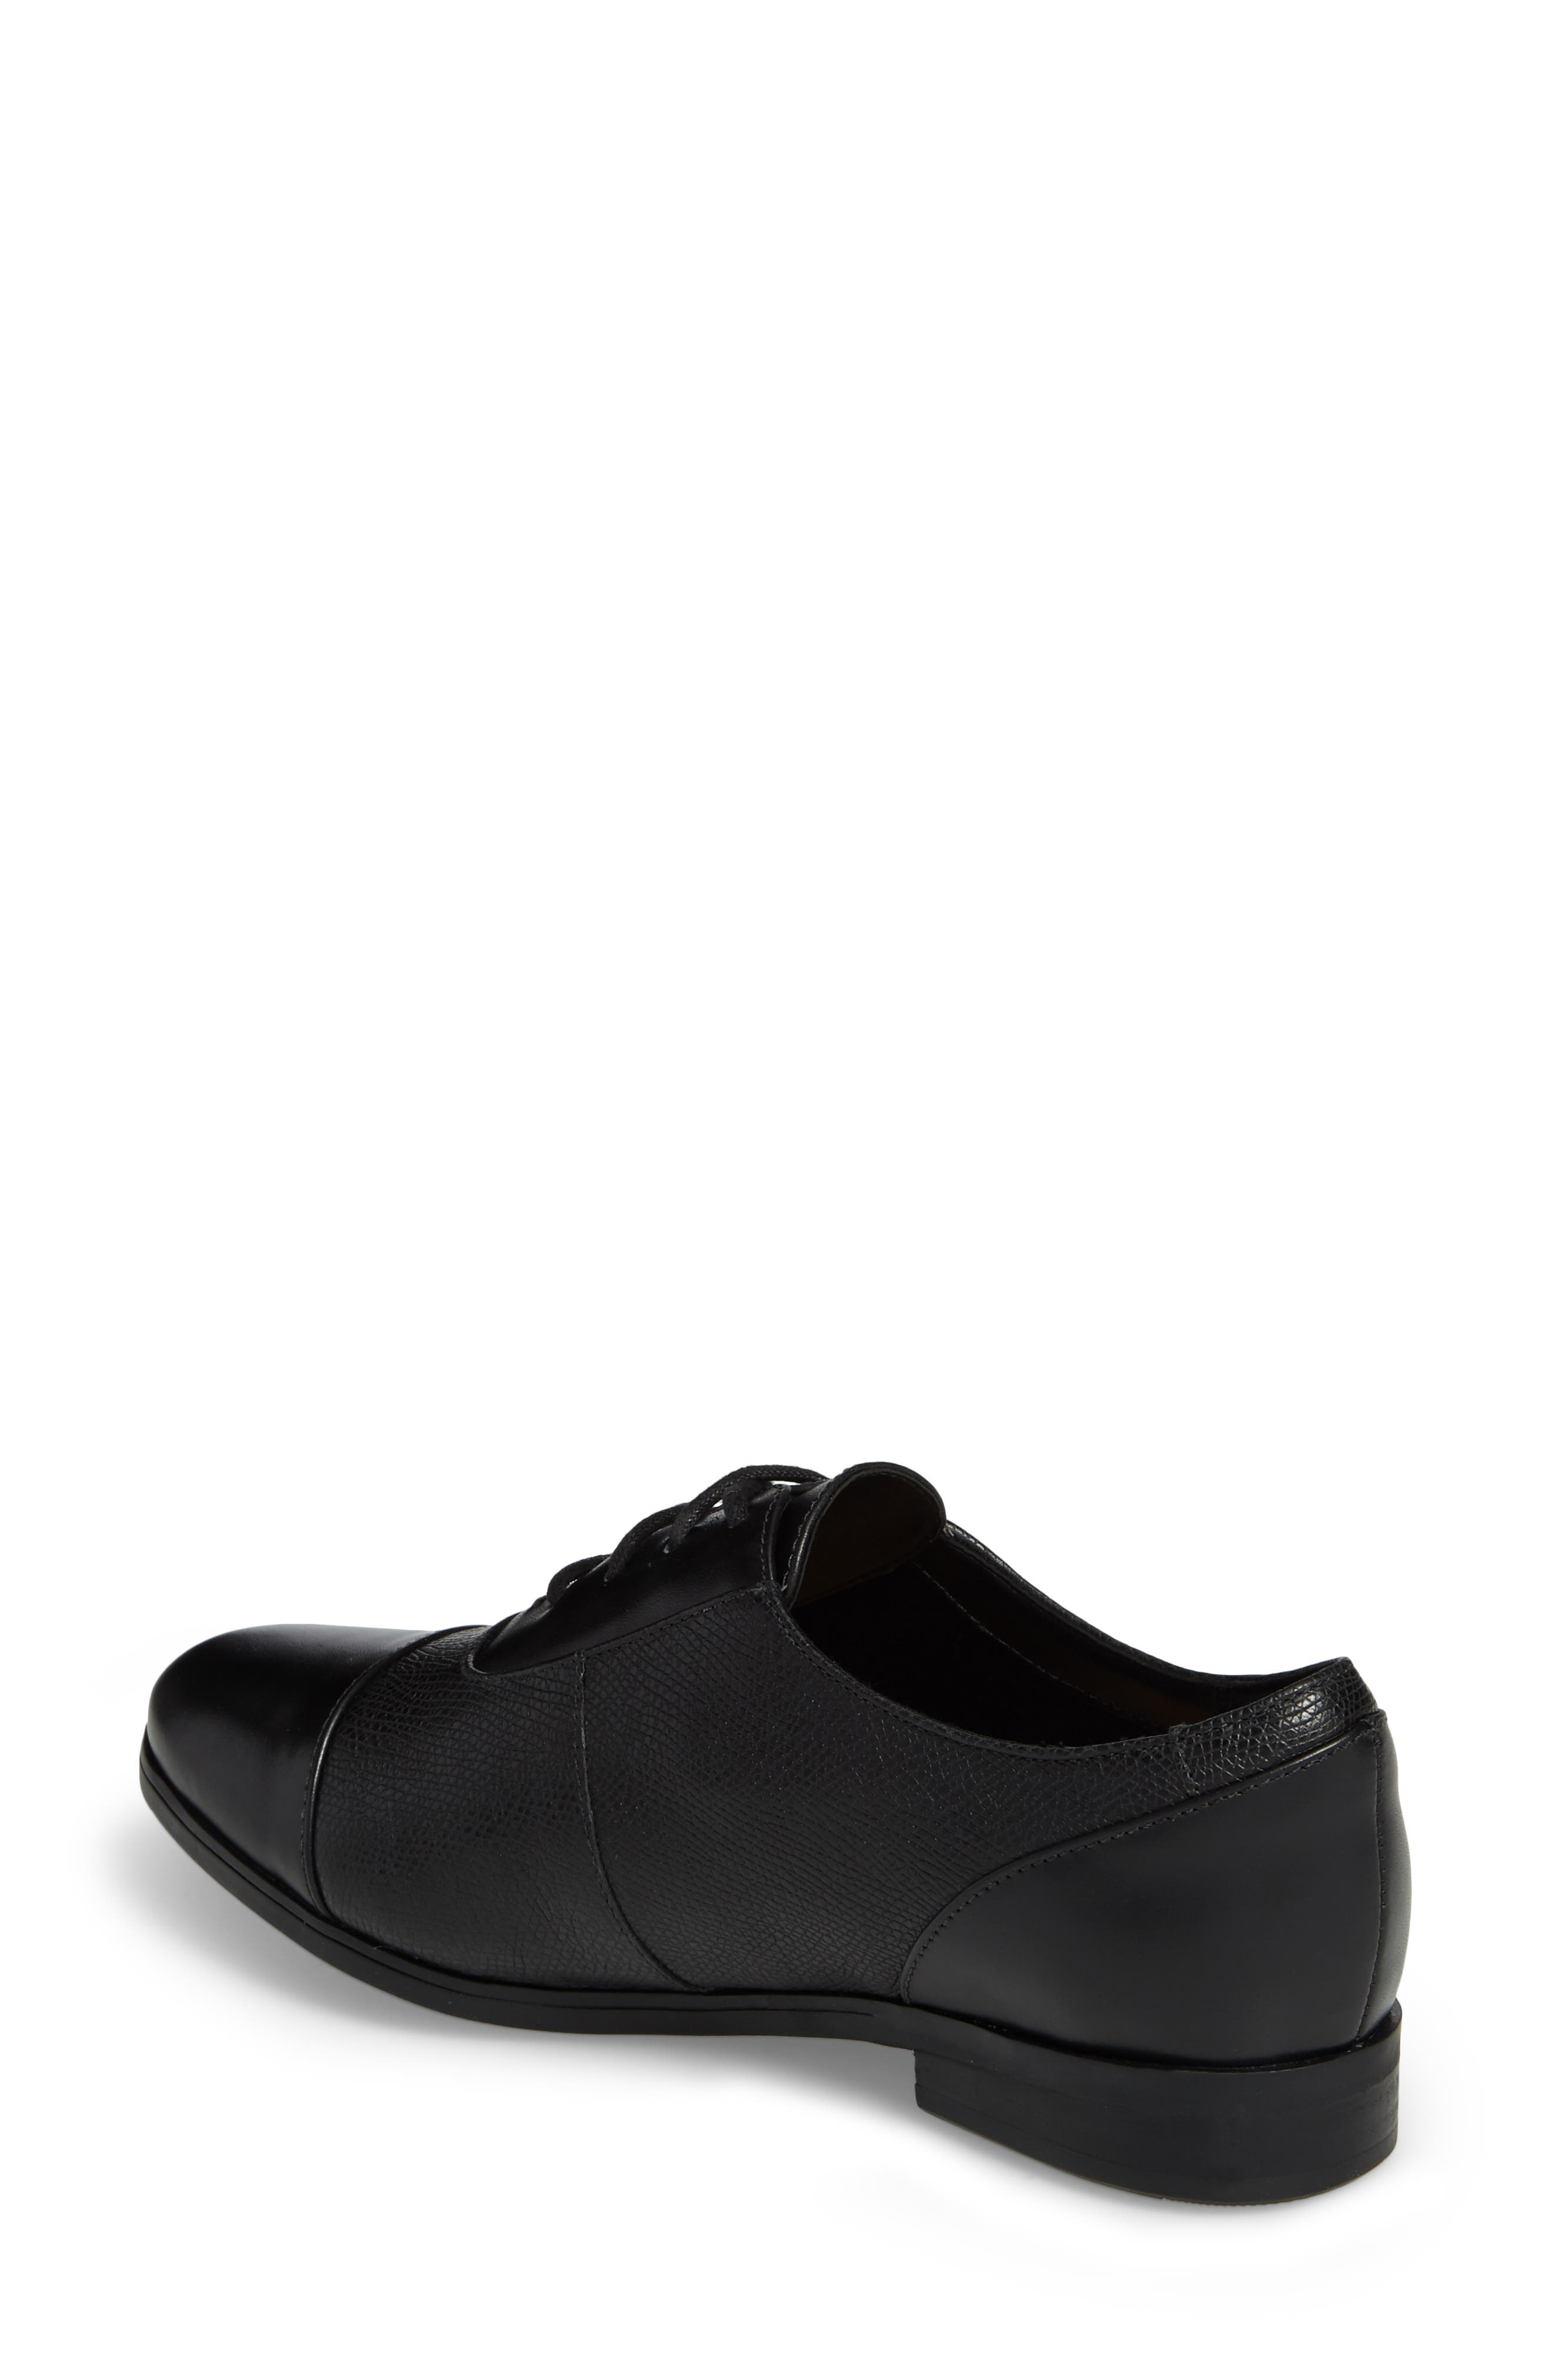 Tilmont Ivy Oxford,                             Alternate thumbnail 2, color,                             BLACK LEATHER